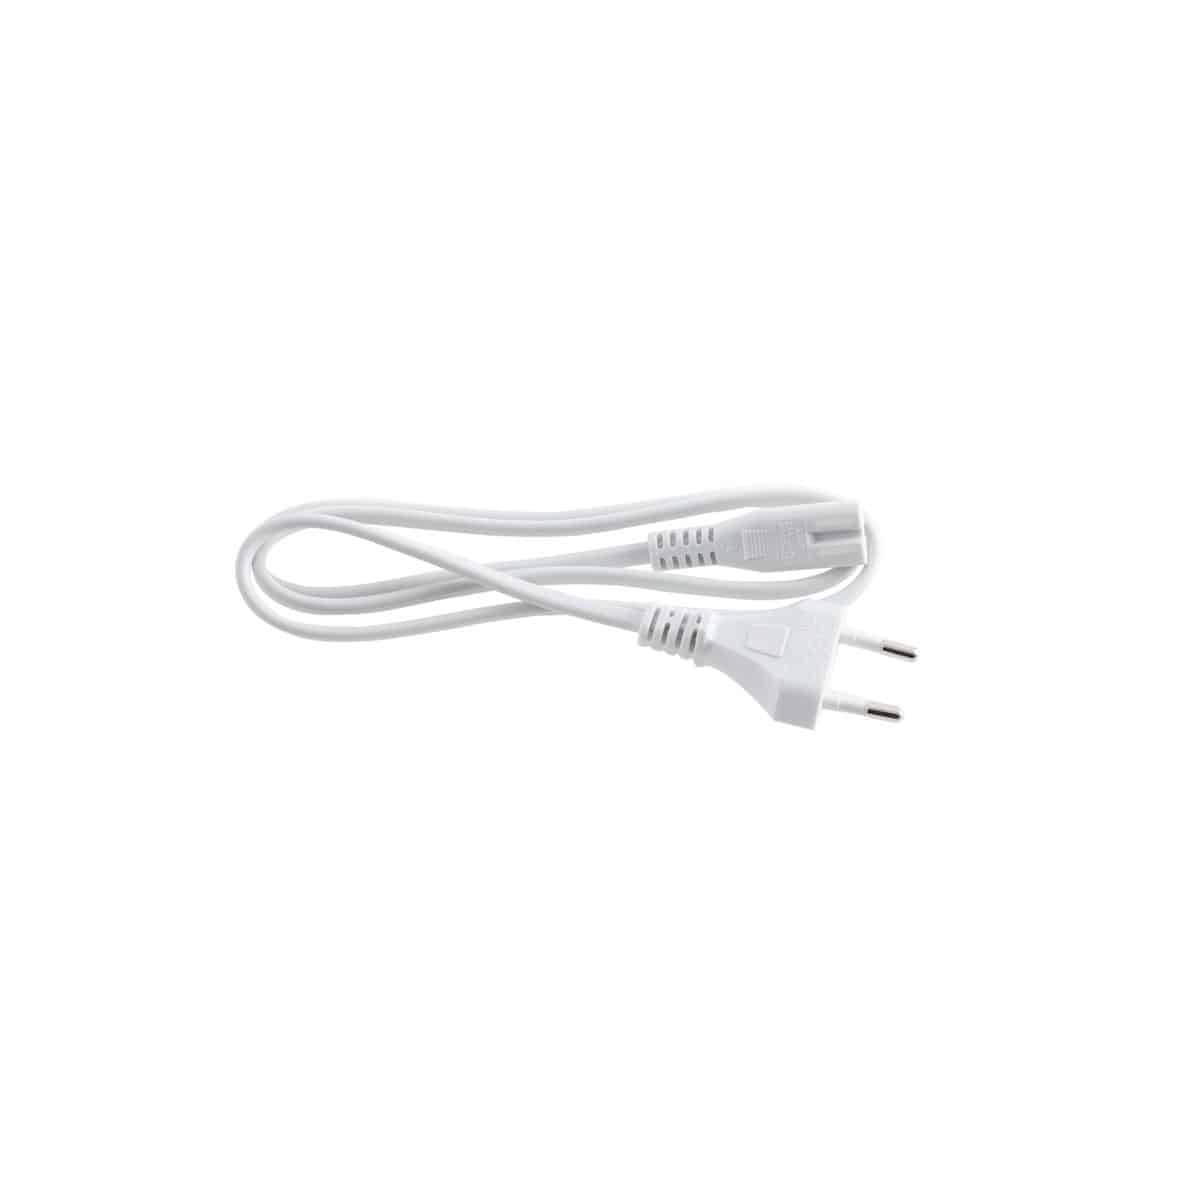 DJI Phantom 4 Charger AC Cable Only (EU)